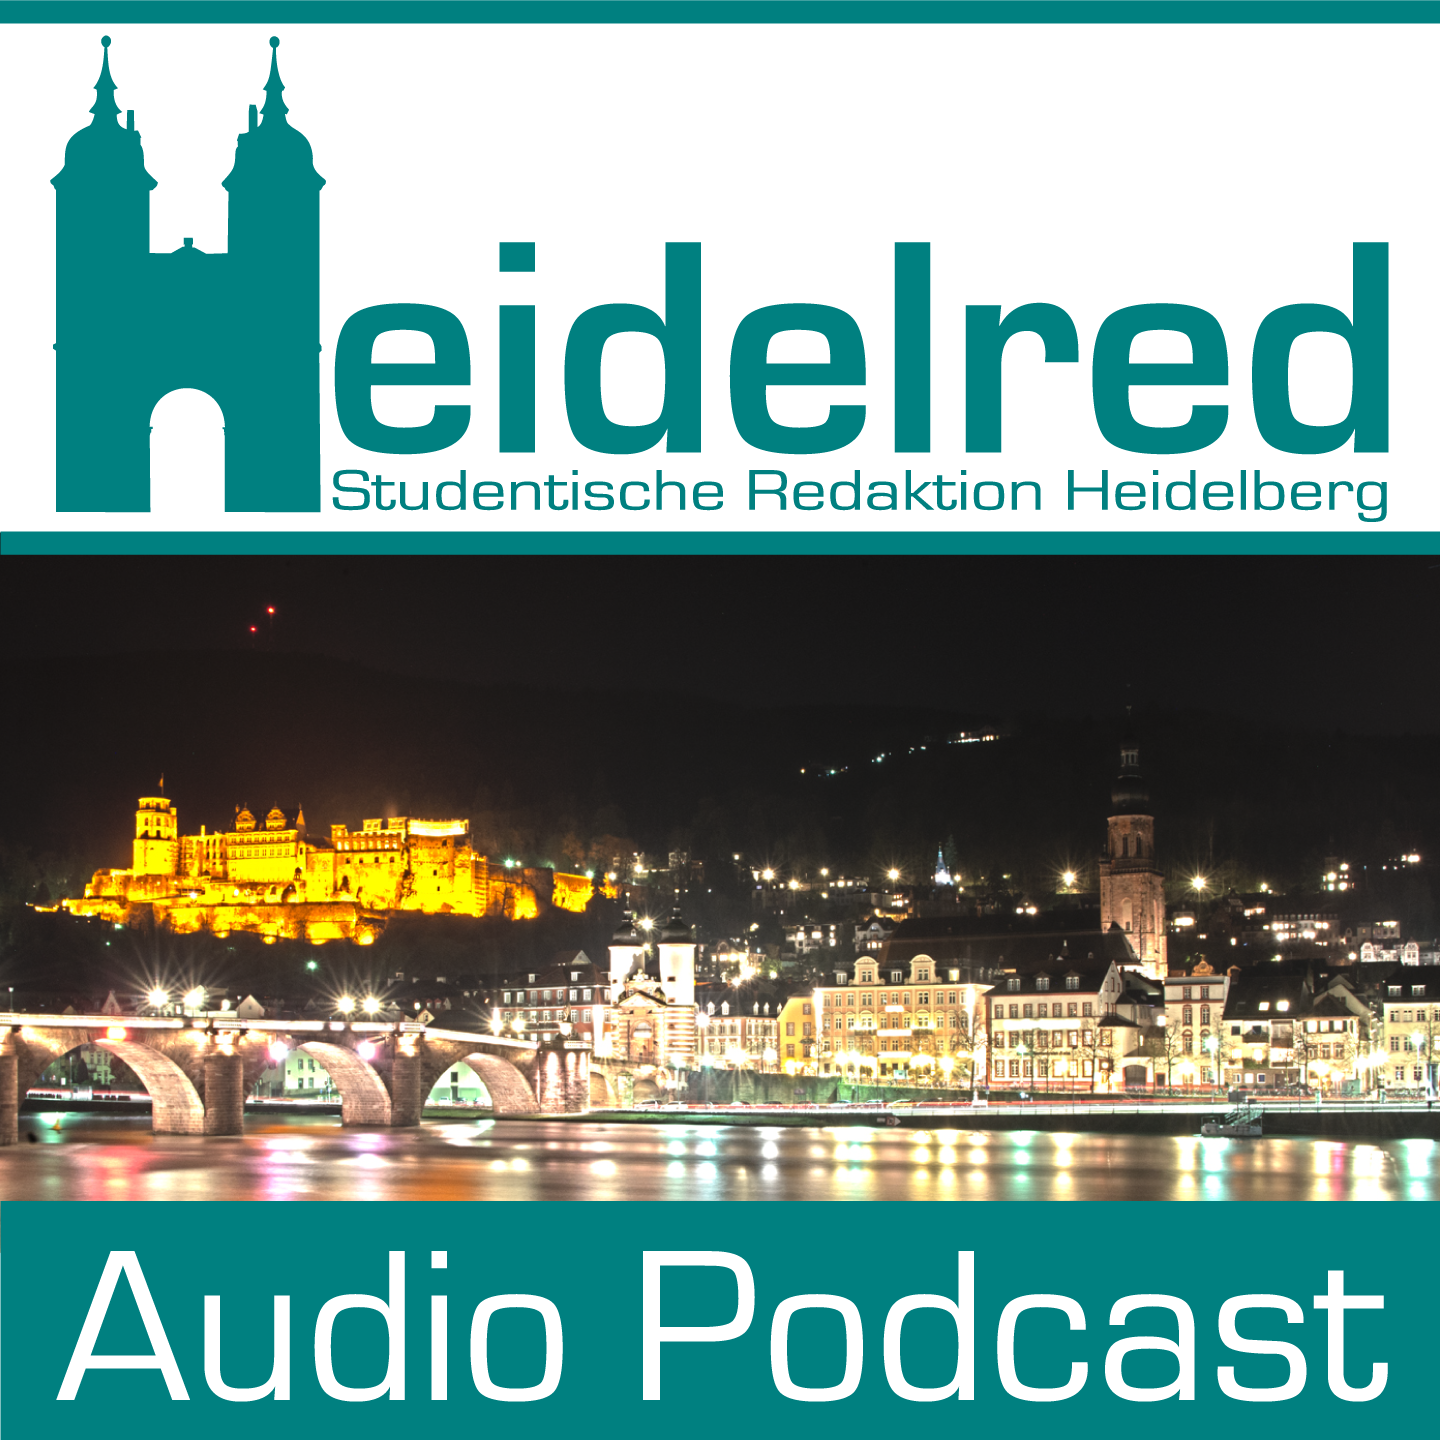 heidelred_audio_podcast